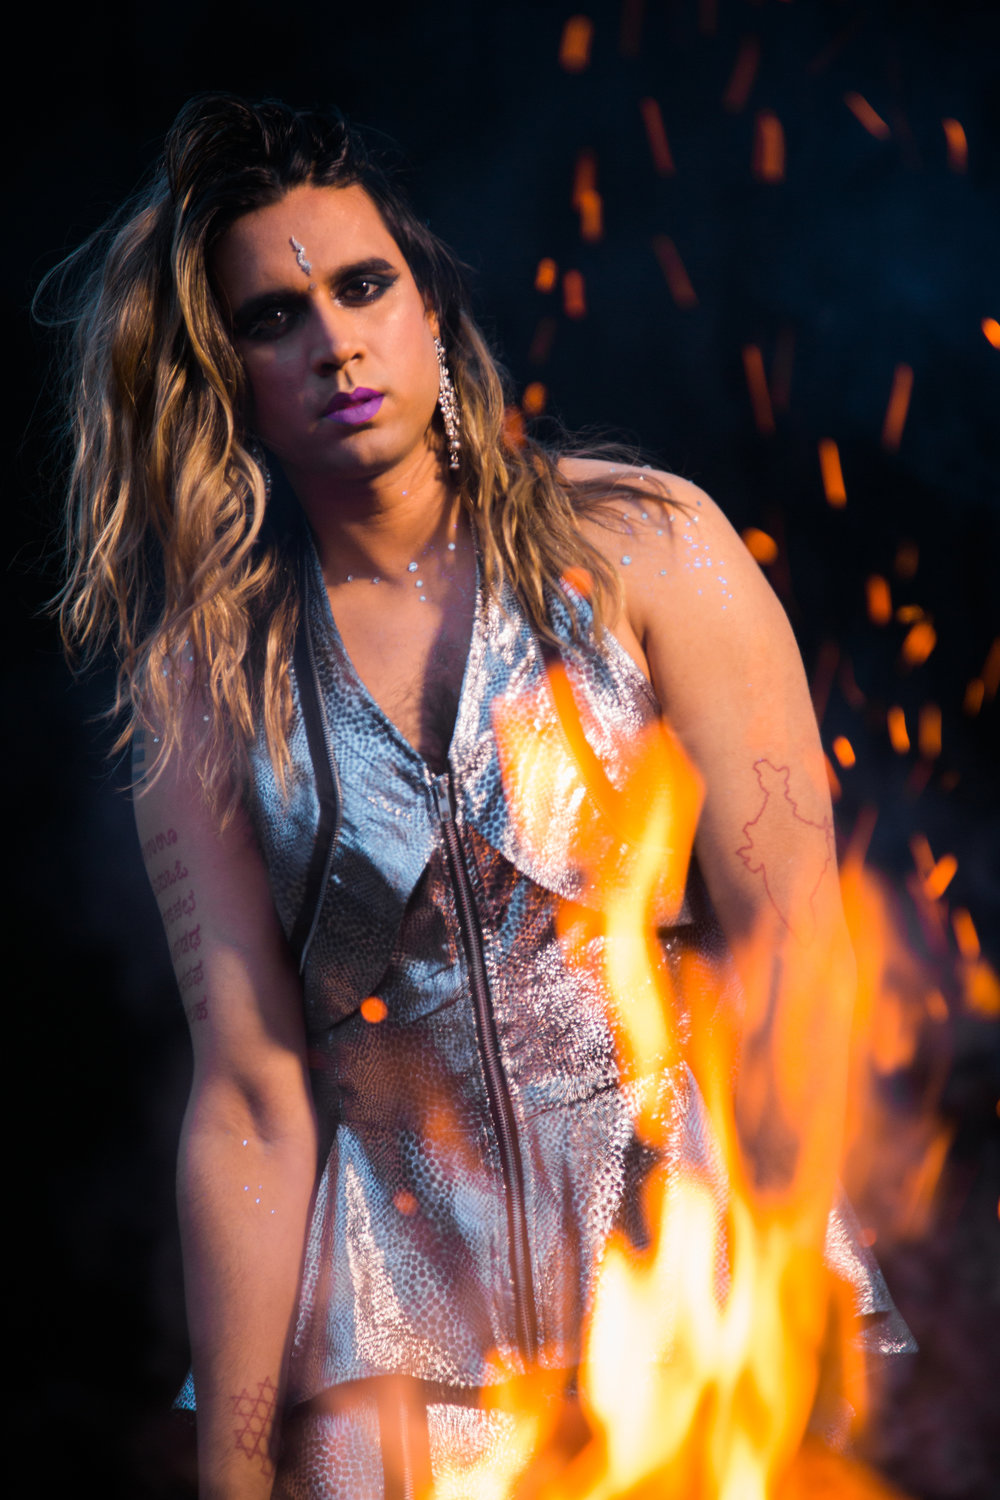 Portraits of Vivek Shraya by Zachary Ayotte (2)